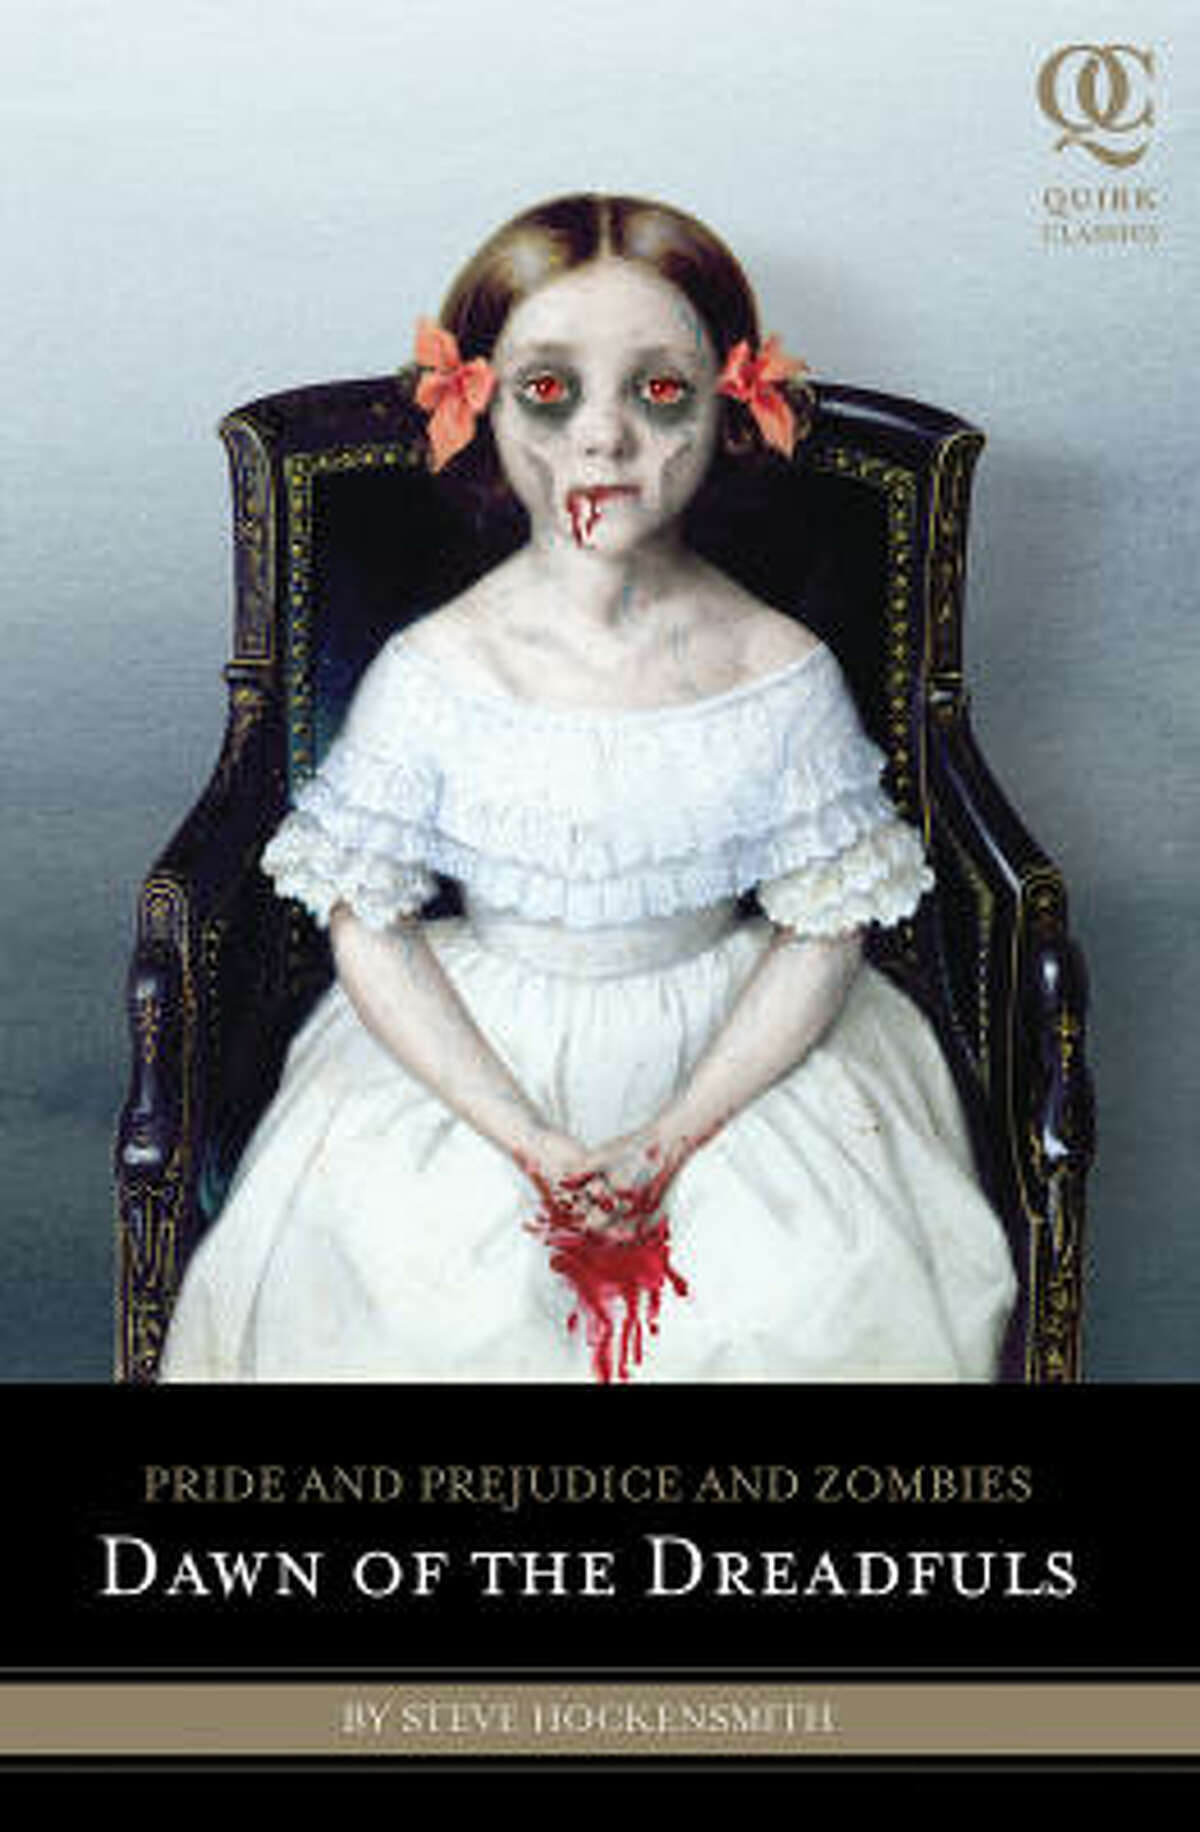 """""""Pride and Prejudice and Zombies: Dawn of the Dreadfuls"""" by Steve Hockensmith (Quirk Books, $12.95): It's a prequel to the best-selling """"Pride and Prejudice and Zombies."""""""